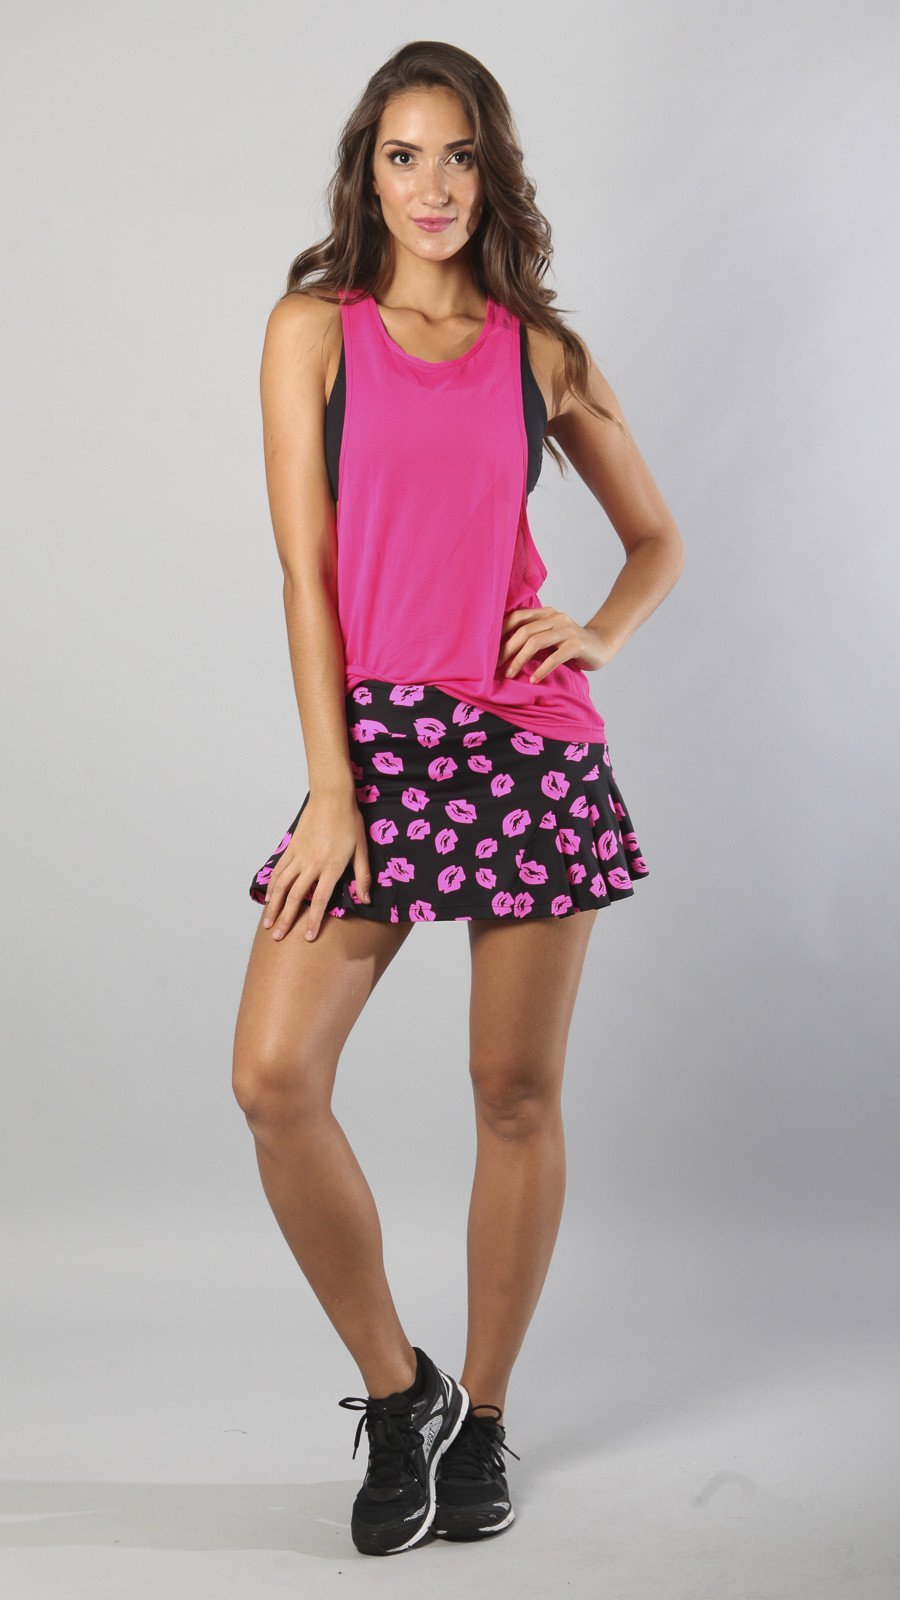 Designer Pink Long Tank Top - Loose Fitting LT1097 - Equilibrium Activewear - Image 3